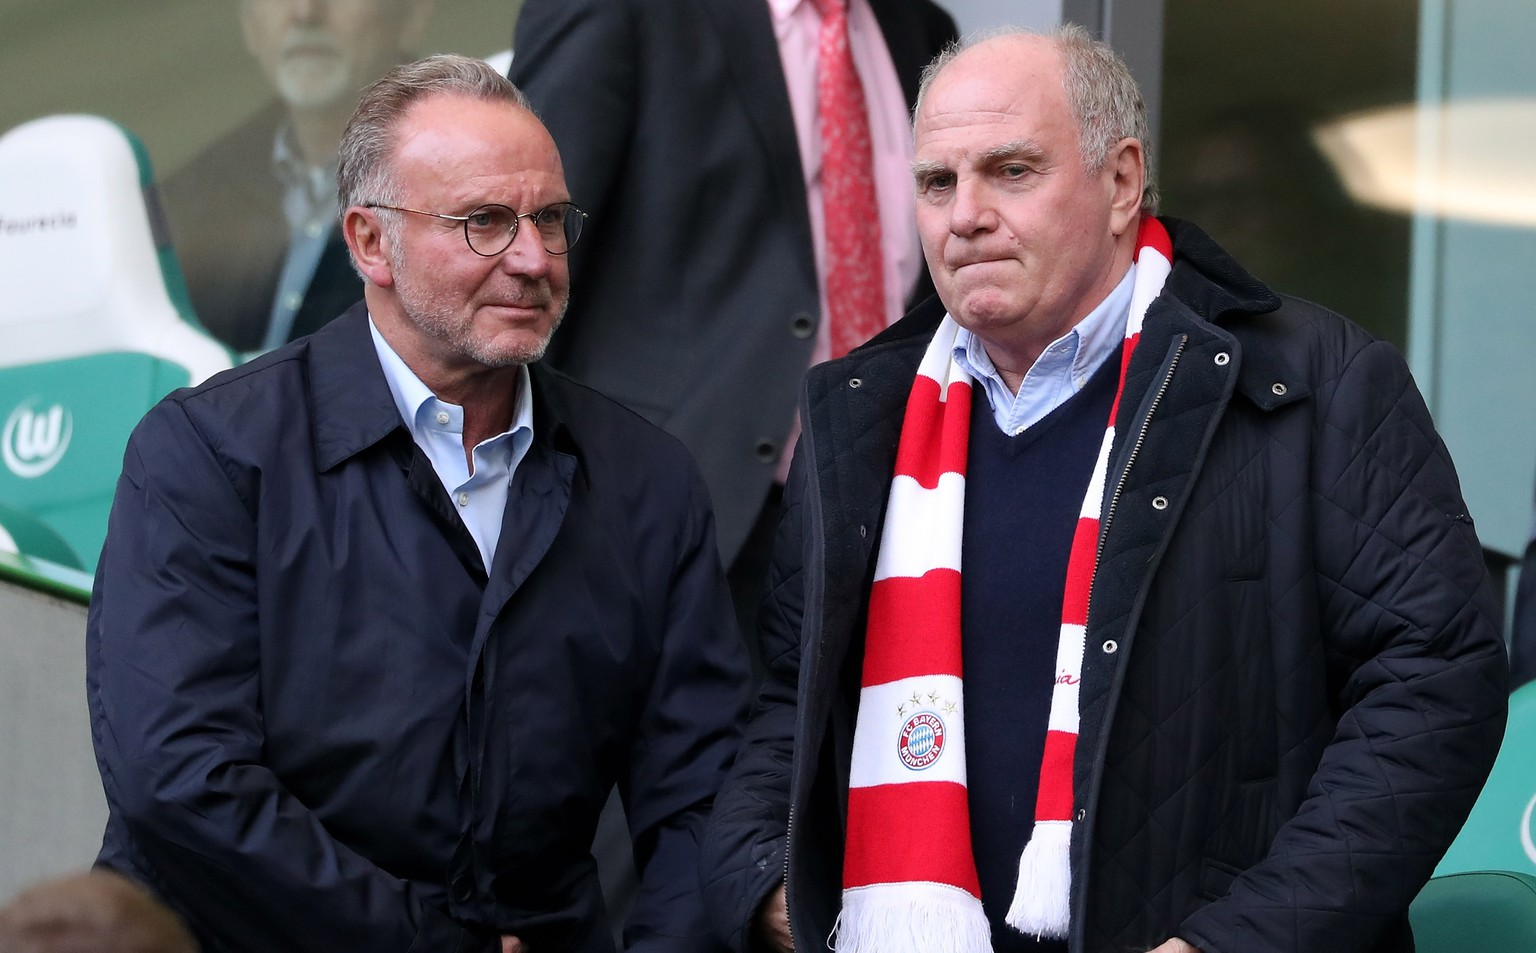 epa07106992 Bayern's chairman of the board Karl-Heinz Rummenigge (L) and president Uli Hoeness (R) during the German Bundesliga soccer match between VfL Wolfsburg and Bayern Munich in Wolfsburg, Germany, 20 October 2018.  EPA/FRIEDEMANN VOGEL CONDITIONS - ATTENTION:  The DFL regulations prohibit any use of photographs as image sequences and/or quasi-video.